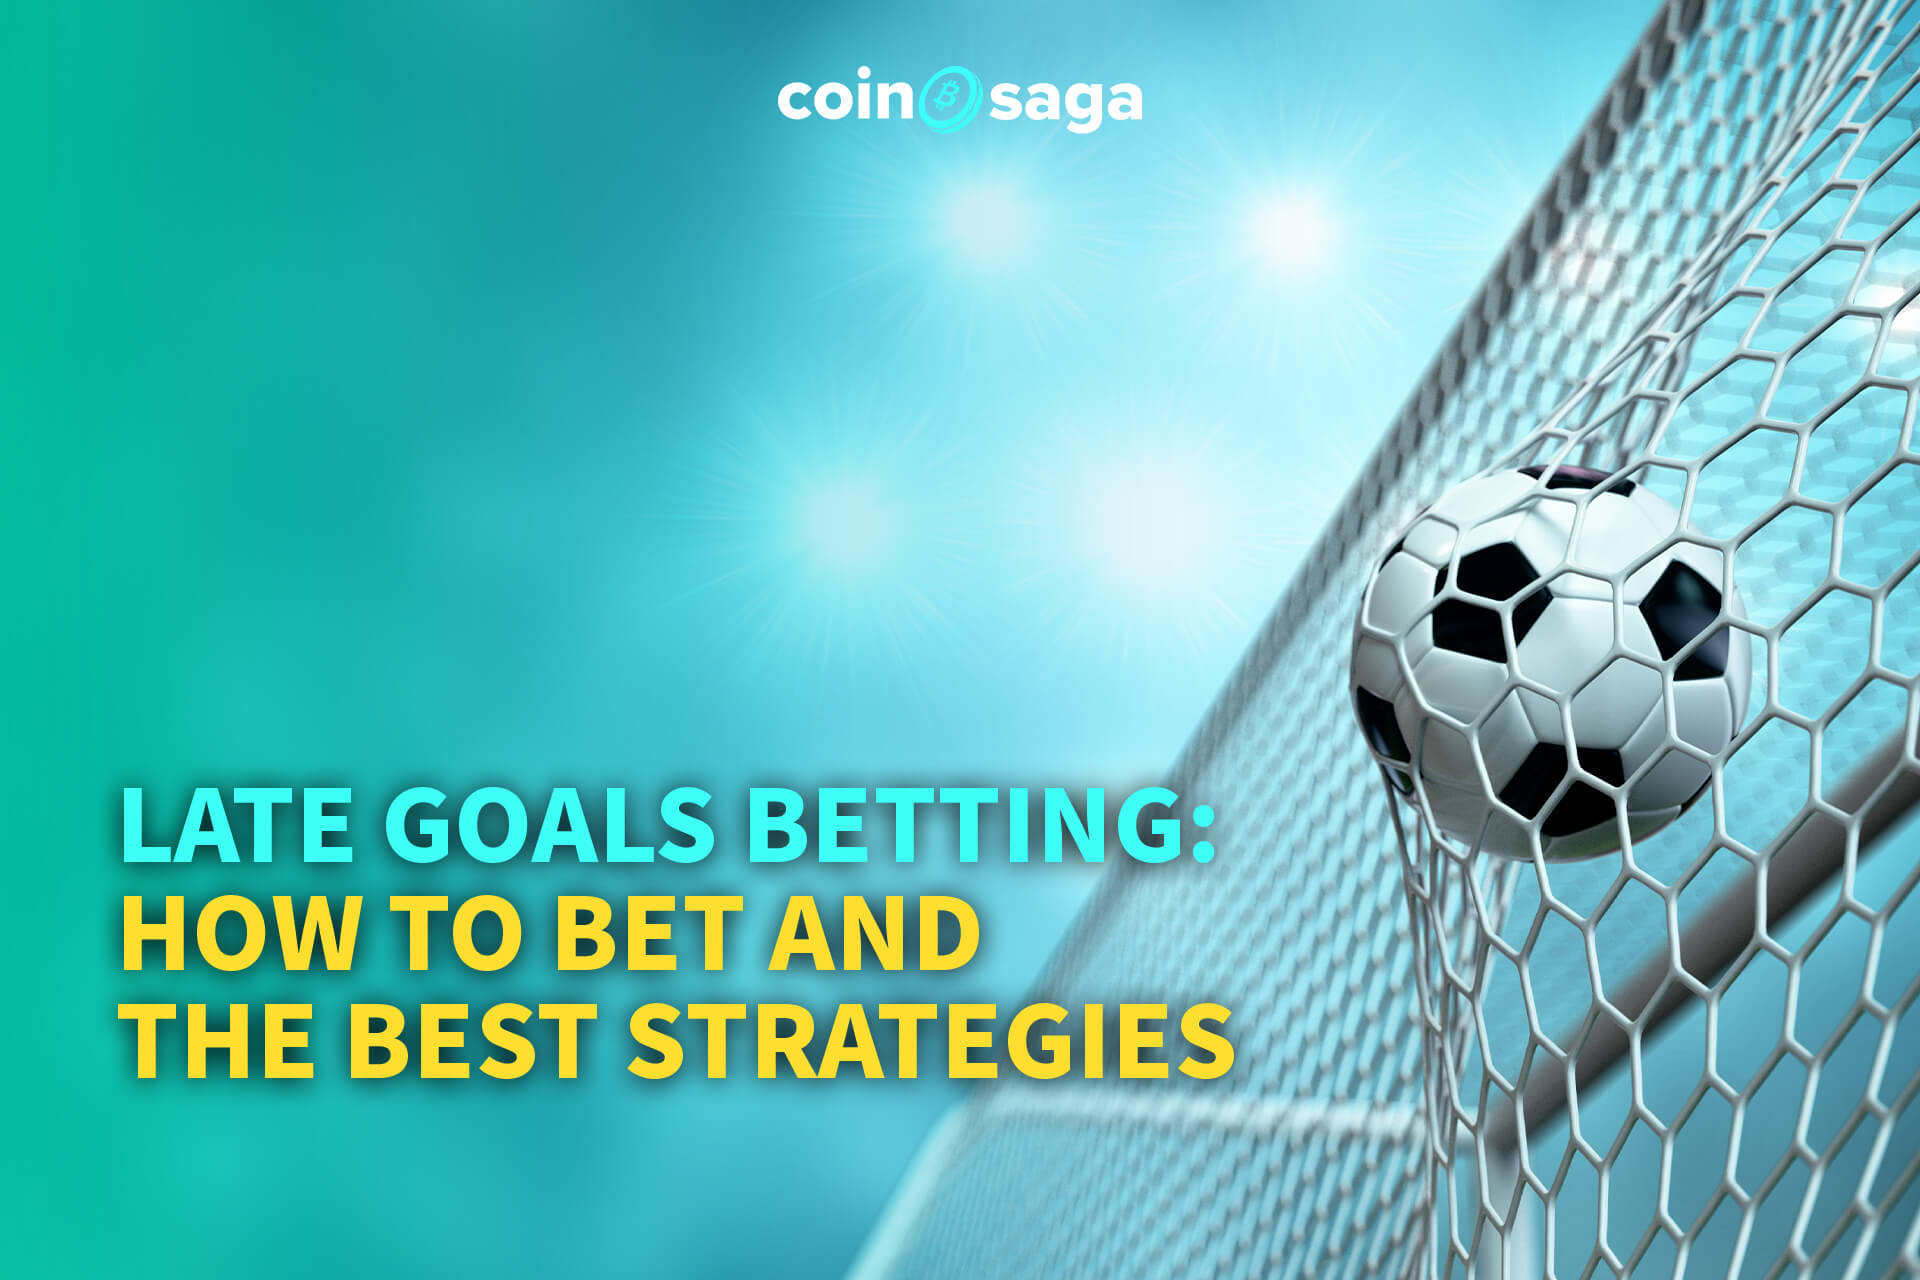 Late goals betting